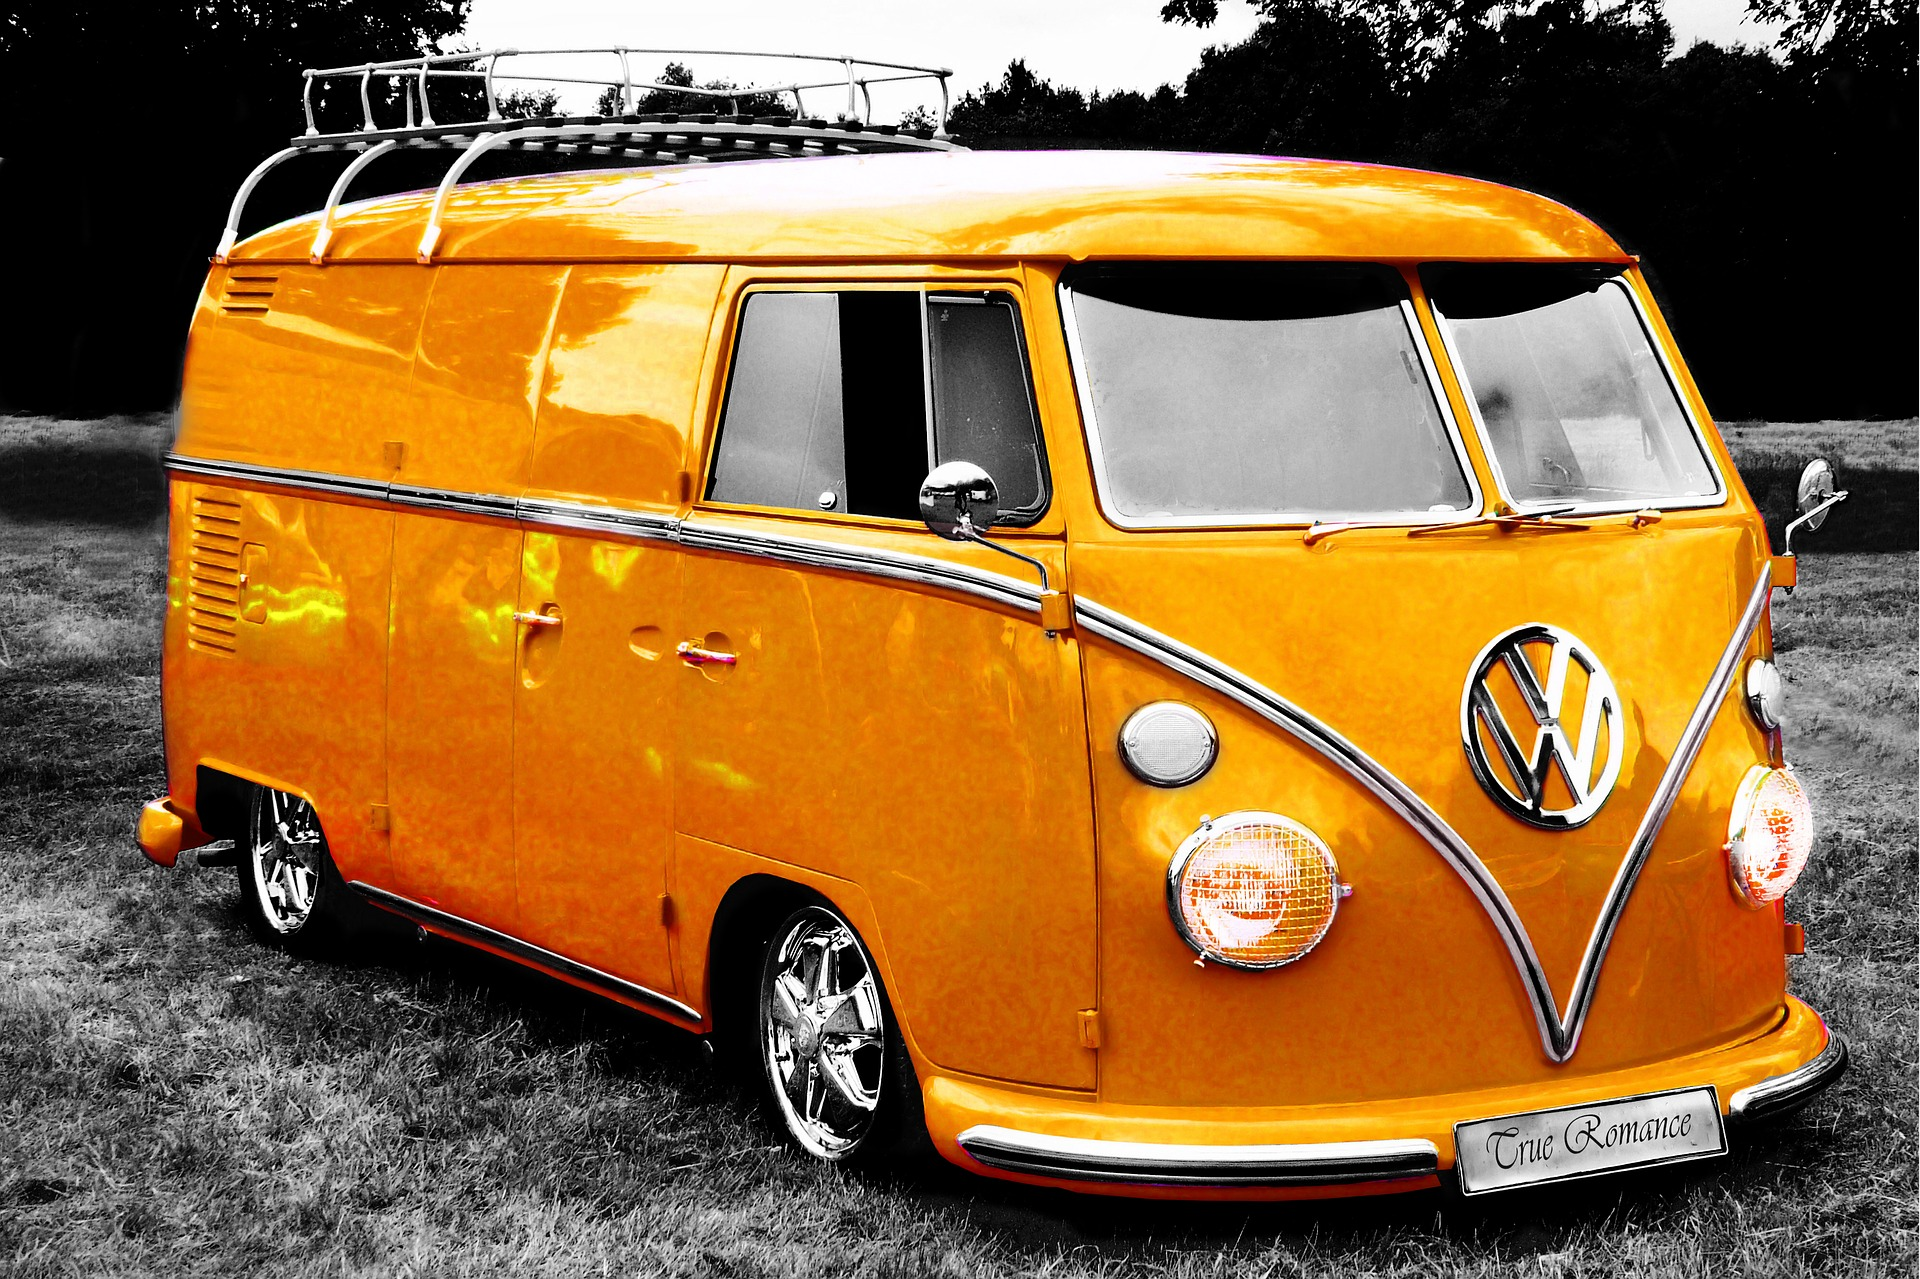 Beautiful Vw Bus Wallpapers By Chales Vintage Volkswagen 1920x1279 Wallpaper Teahub Io